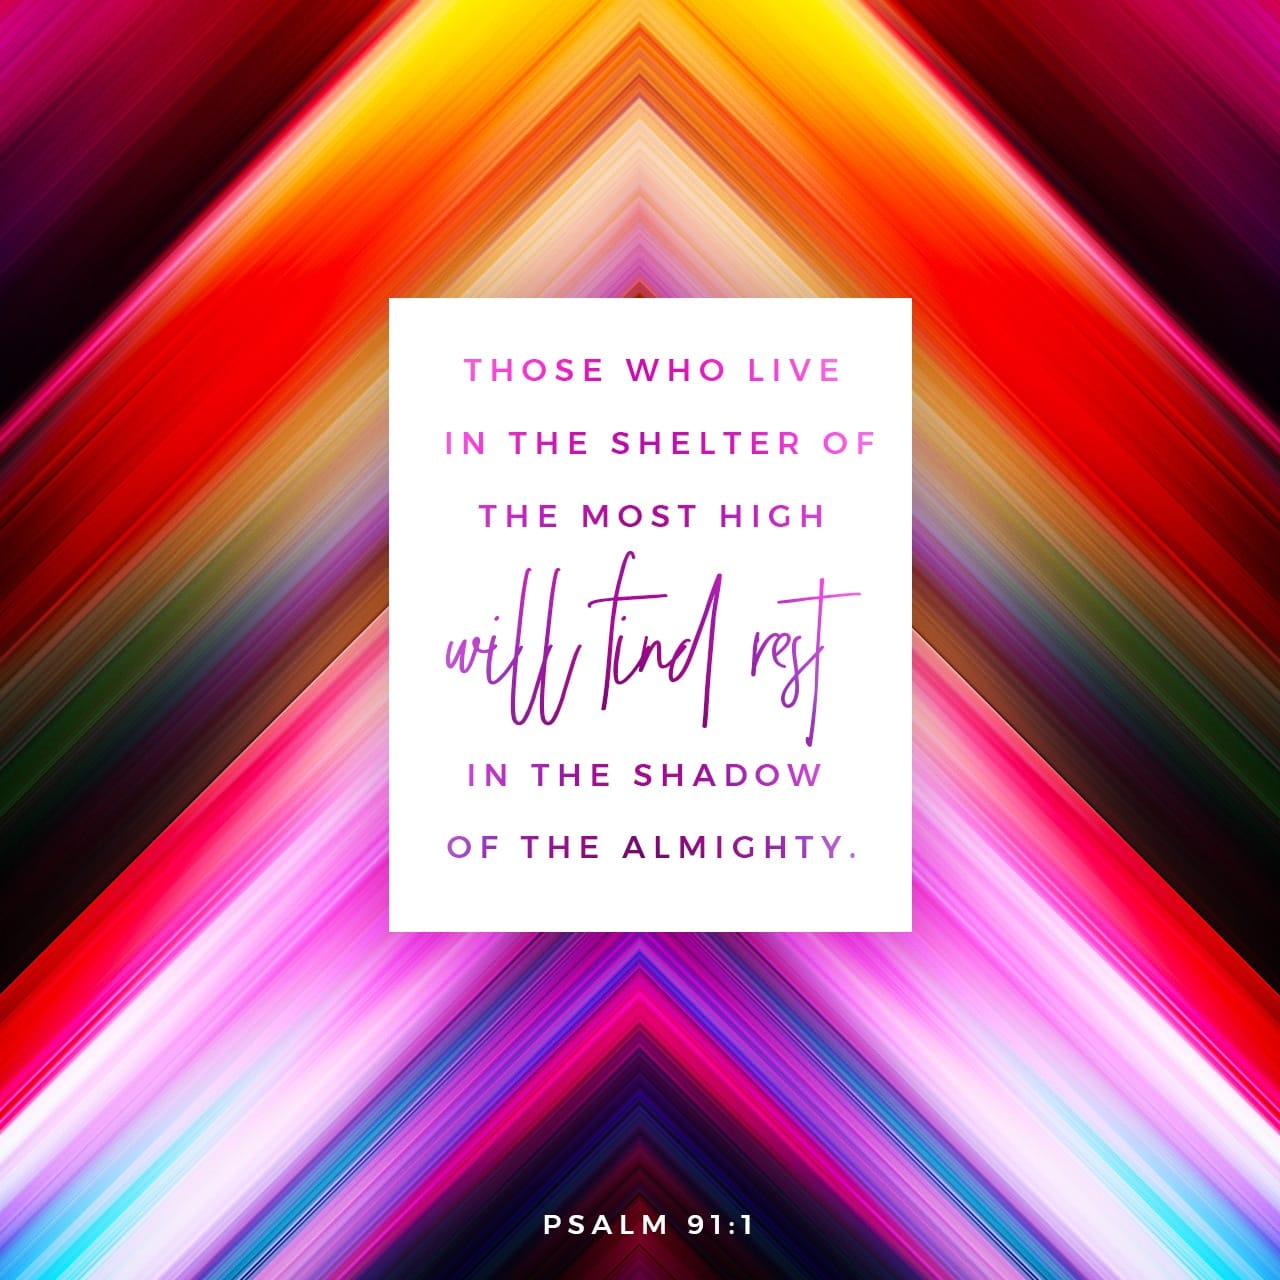 Psalms 91:1-9 He that dwelleth in the secret place of the most High shall abide under the shadow of the Almighty. I will say of the LORD, He is my refuge and my fortress: my God; in him will I trust. Surely he shal | King James Version (KJV)